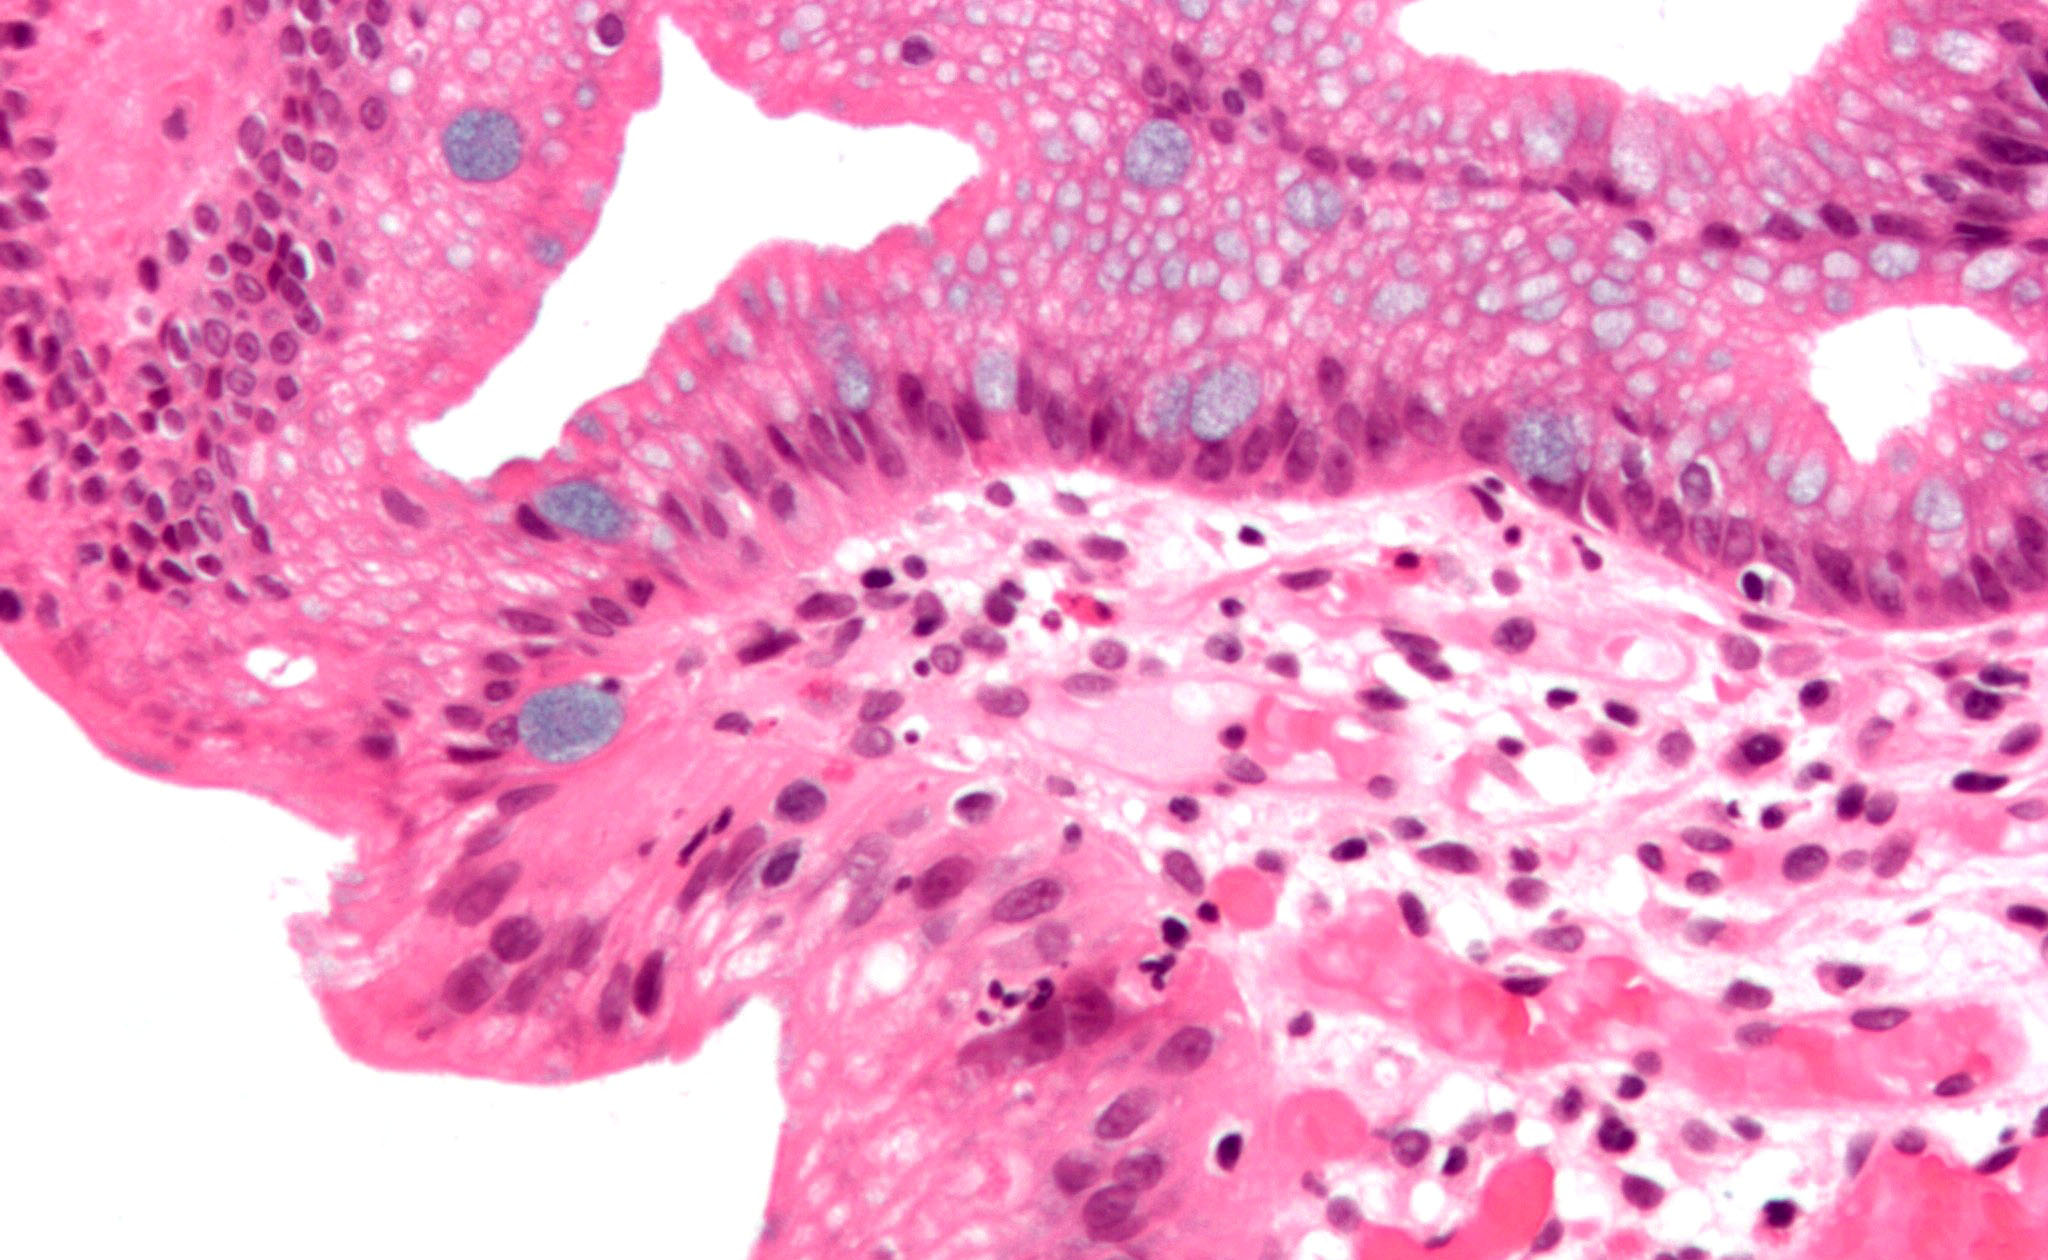 High-magnification micrograph of Barrett's esophagus showing the characteristic goblet cells.